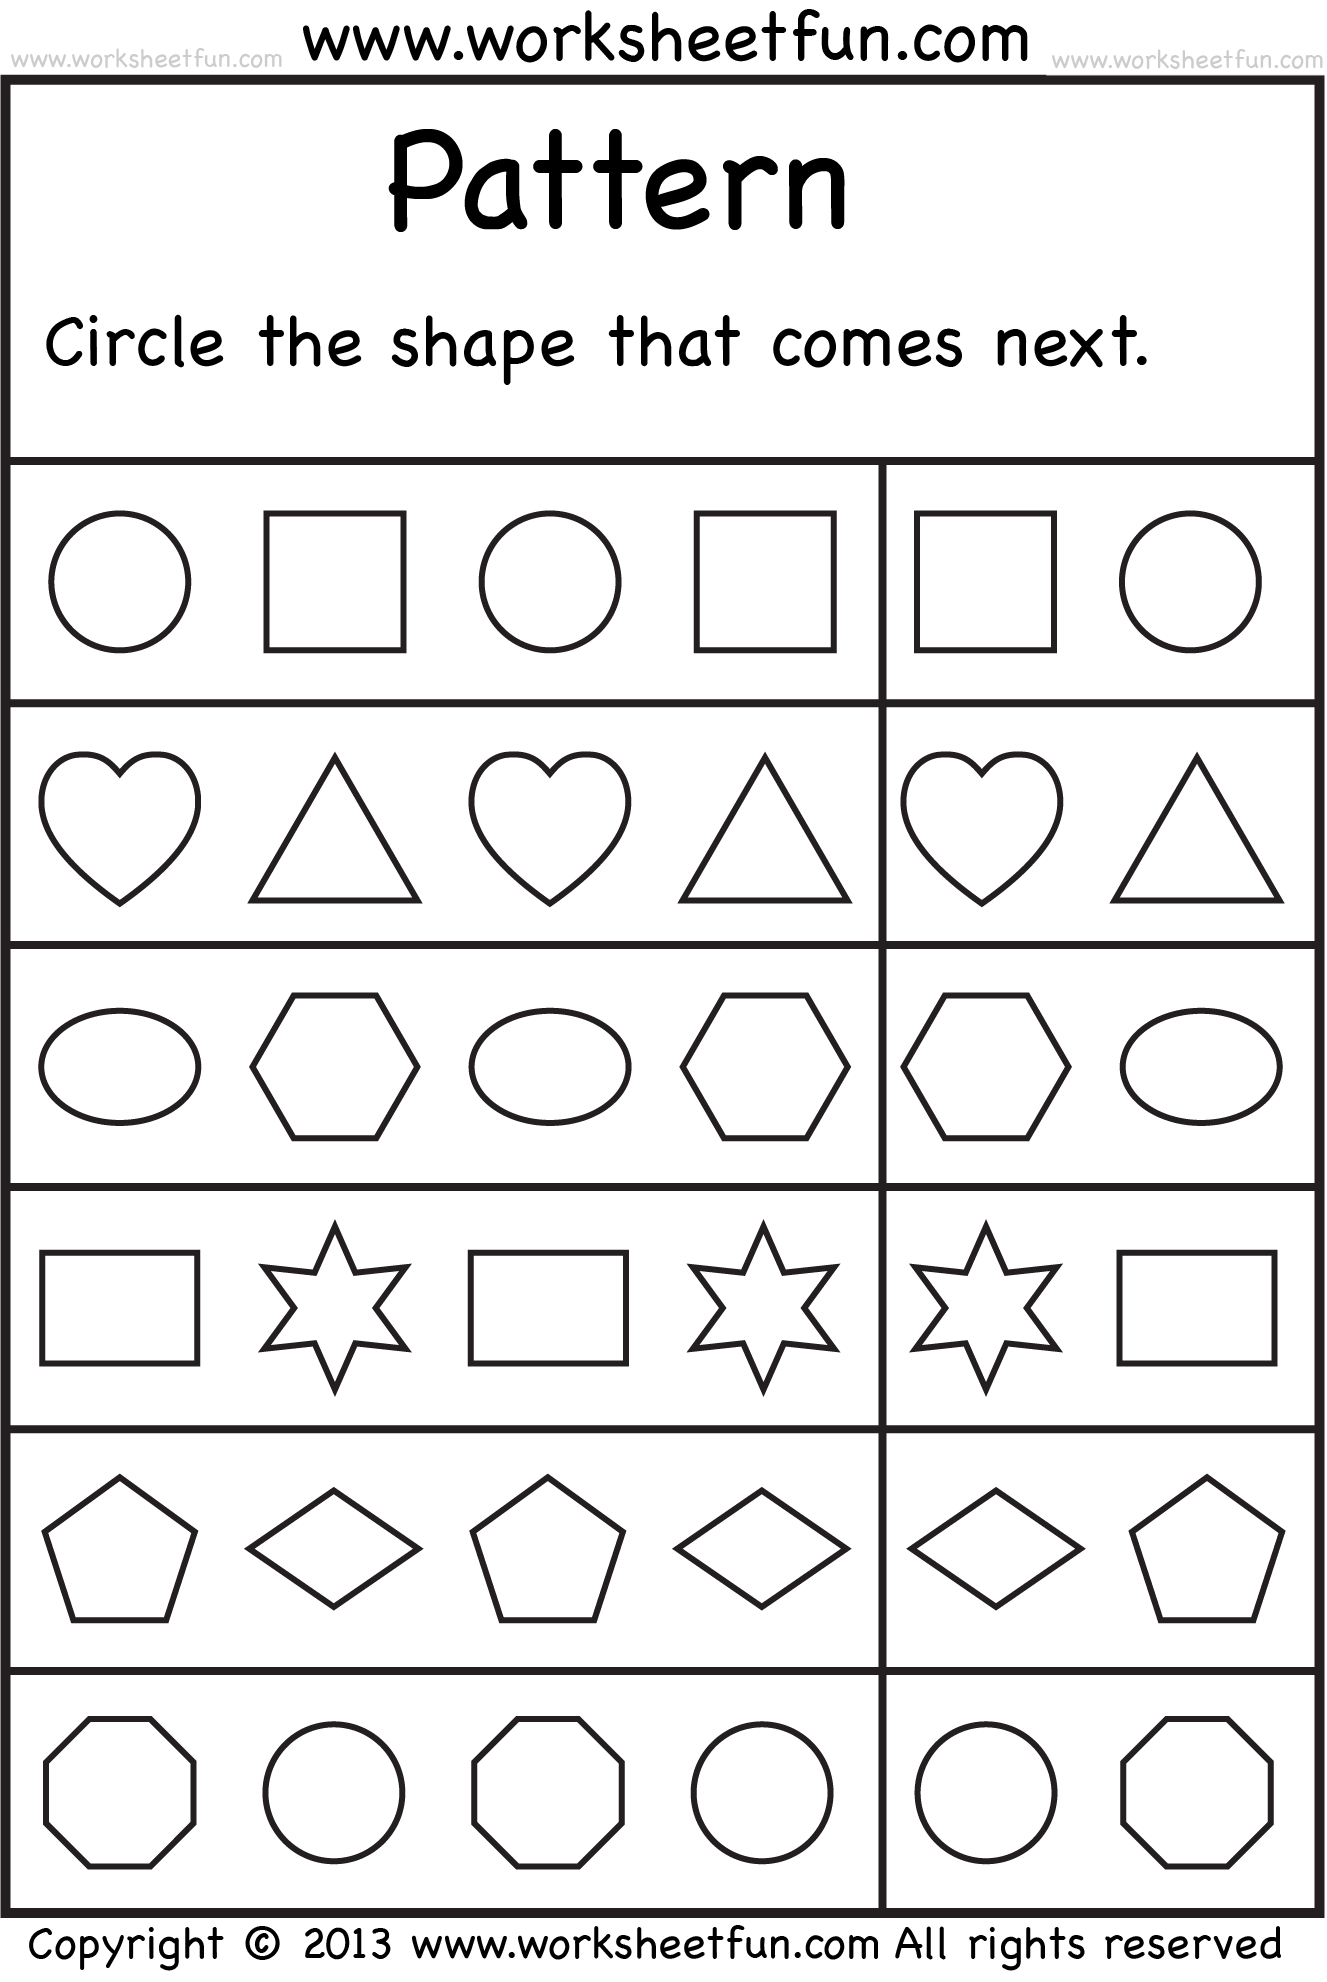 Weirdmailus  Remarkable  Images About School Worksheets On Pinterest  Number Words  With Licious  Images About School Worksheets On Pinterest  Number Words Alphabet Worksheets And Free Printable Kindergarten Worksheets With Charming  Worksheet Also Doubling And Halving Worksheets In Addition Color Yellow Worksheet And Lines Of Symmetry Worksheet Th Grade As Well As Commutative And Associative Property Worksheet Additionally Reading Comprehension Worksheets Th Grade Free From Pinterestcom With Weirdmailus  Licious  Images About School Worksheets On Pinterest  Number Words  With Charming  Images About School Worksheets On Pinterest  Number Words Alphabet Worksheets And Free Printable Kindergarten Worksheets And Remarkable  Worksheet Also Doubling And Halving Worksheets In Addition Color Yellow Worksheet From Pinterestcom